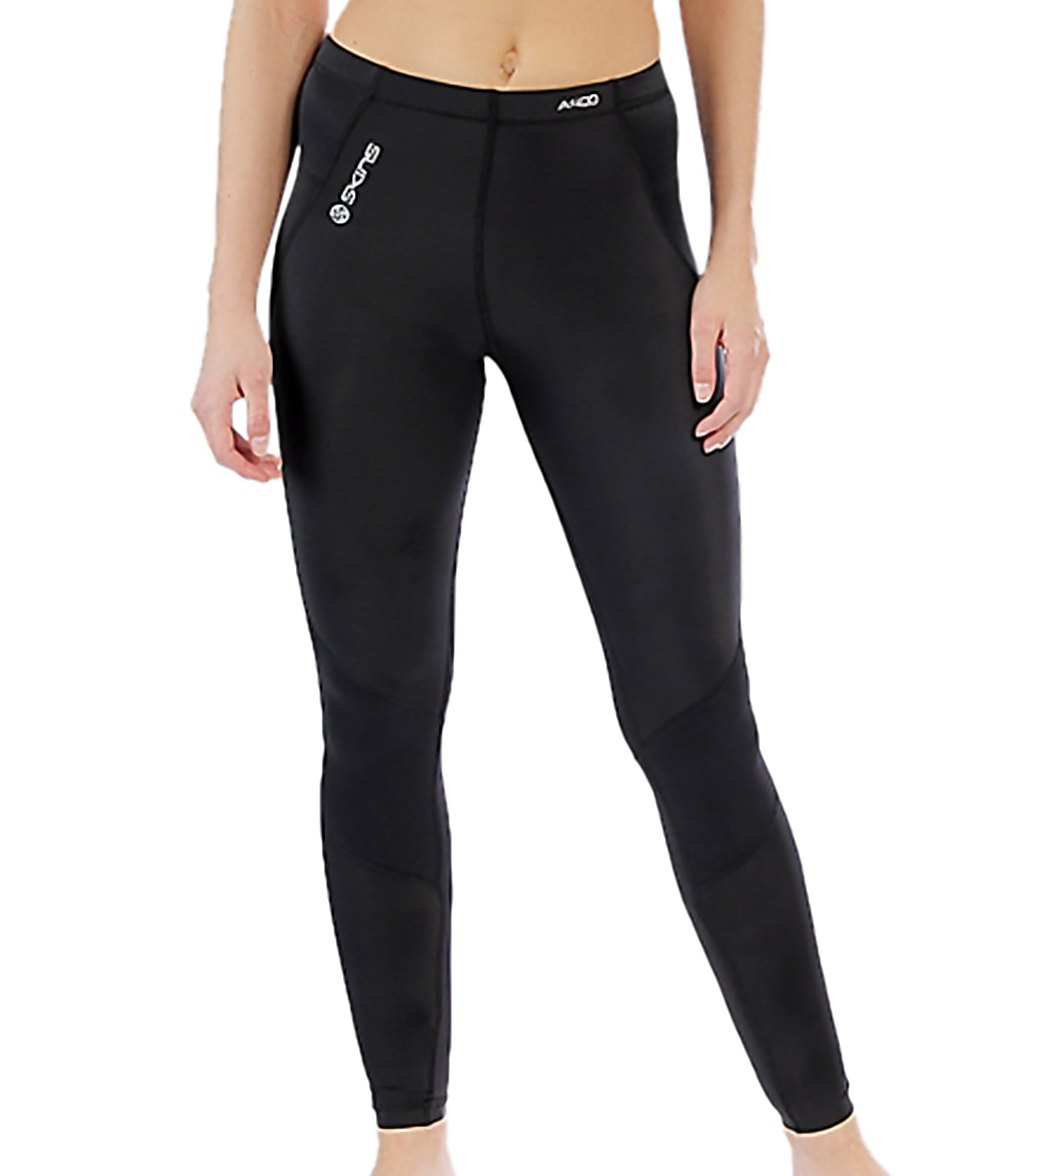 896977cded9ee SKINS Women s A400 Compression Long Tights at SwimOutlet.com - Free Shipping